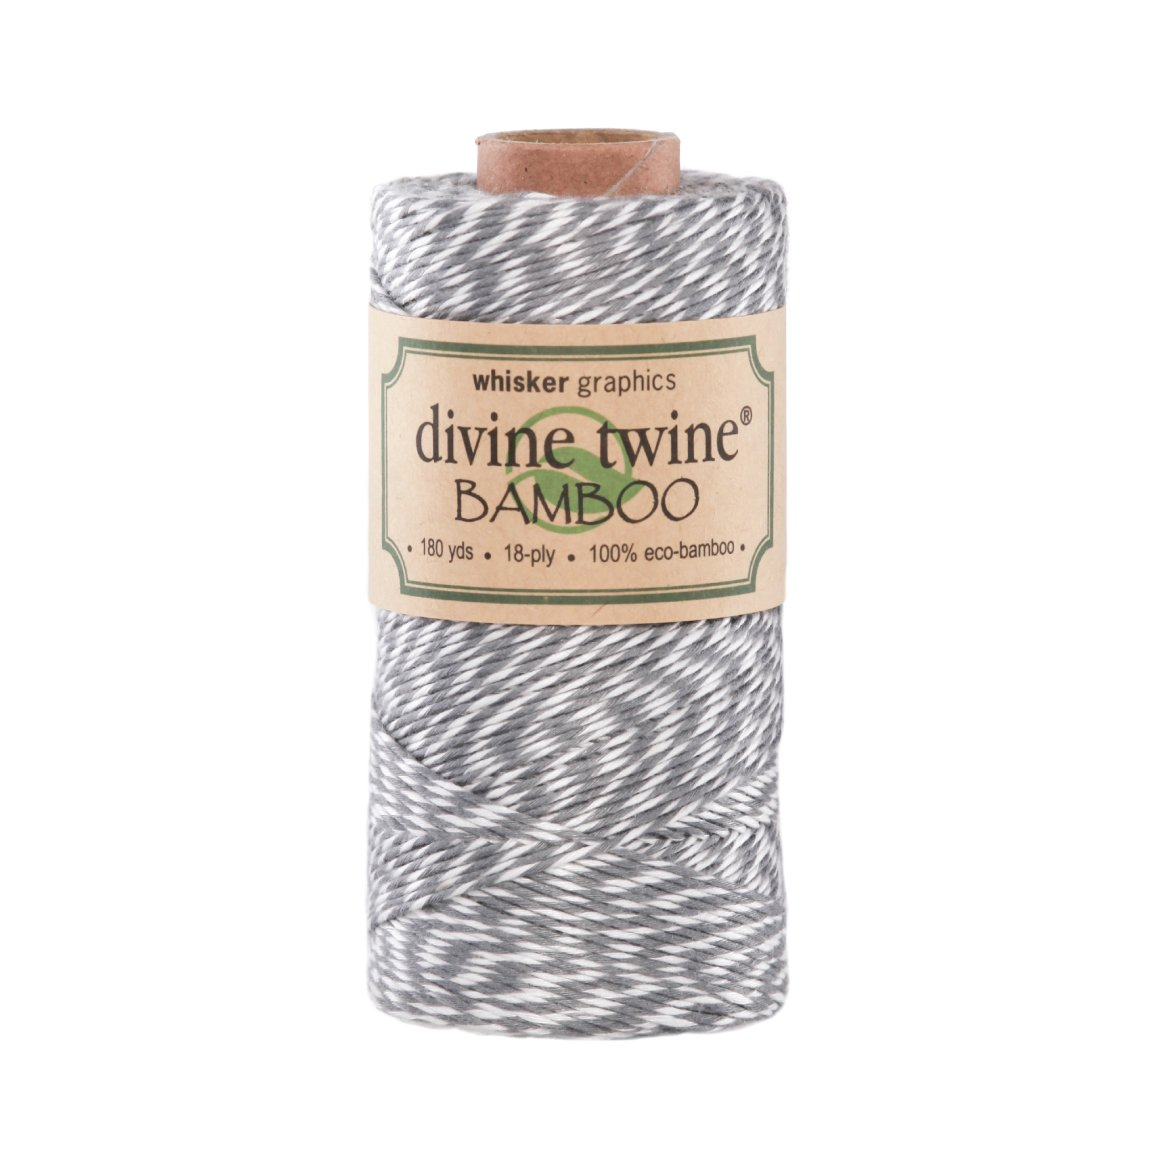 Divine Twine Eco-Bamboo, Gray/White Whisker Graphics m22011